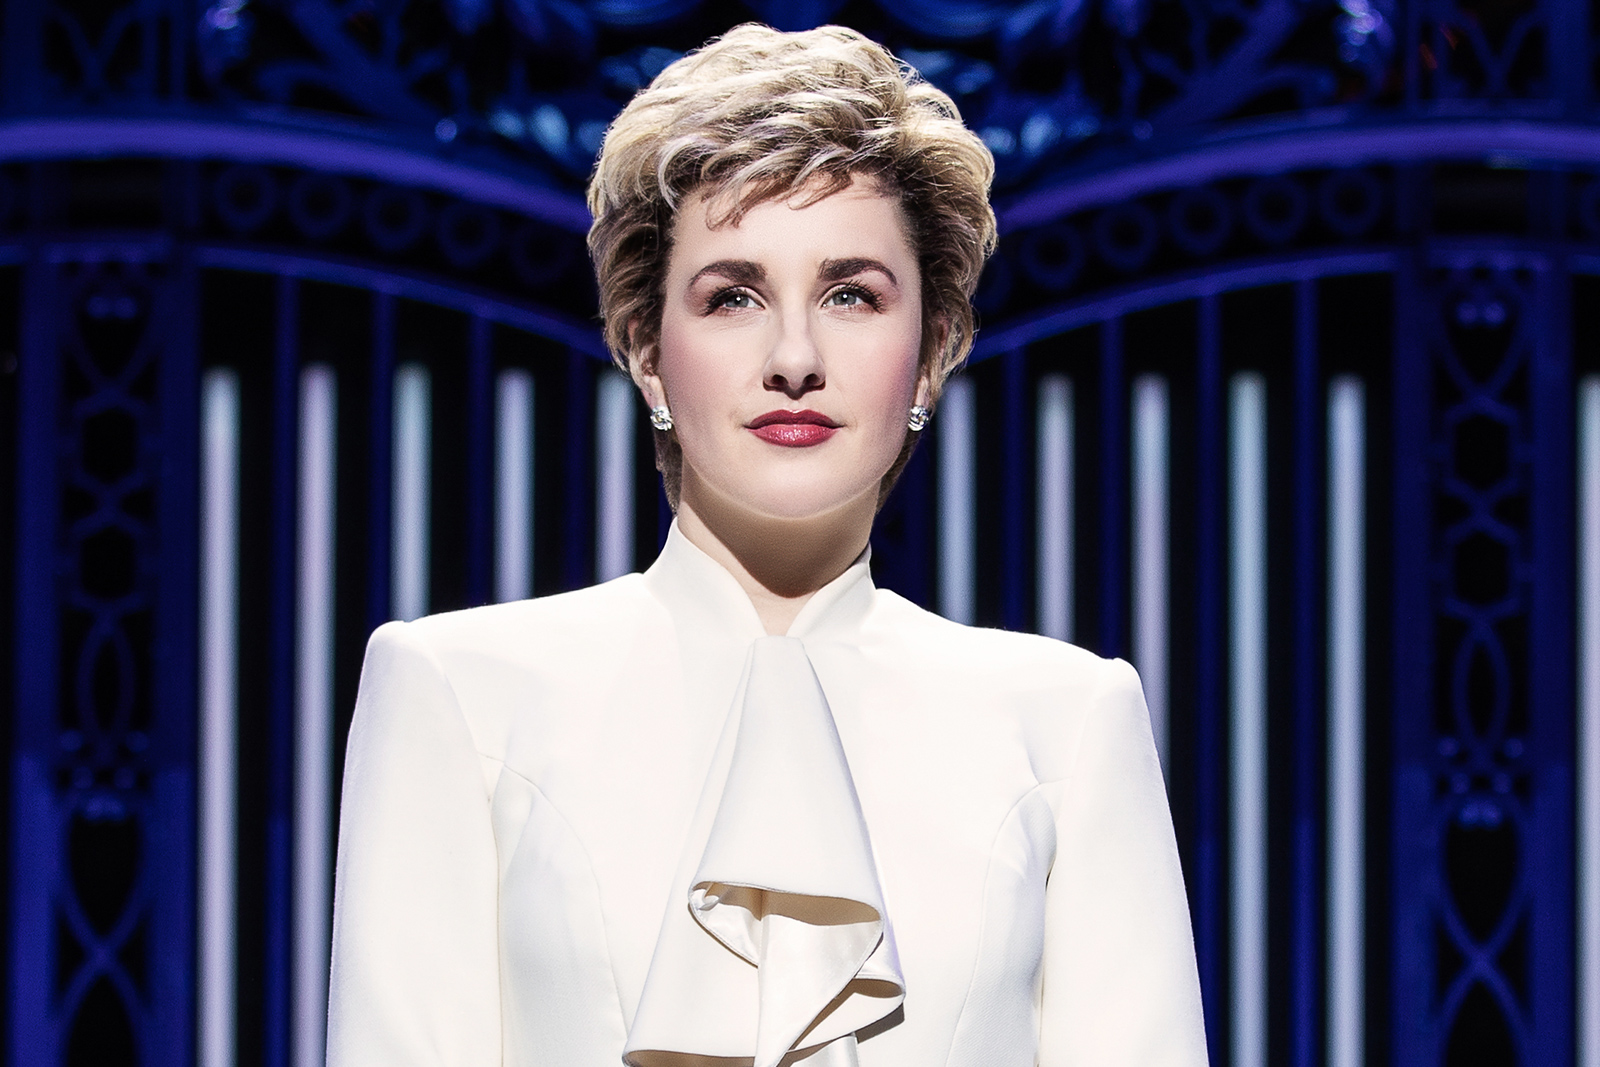 A still from Diana The Musical. A white woman with short cropped hair is staring into the middle distance. She is wearing a cream ruffled shirt and looks composed and contemplative, in front of an ornate backdrop.